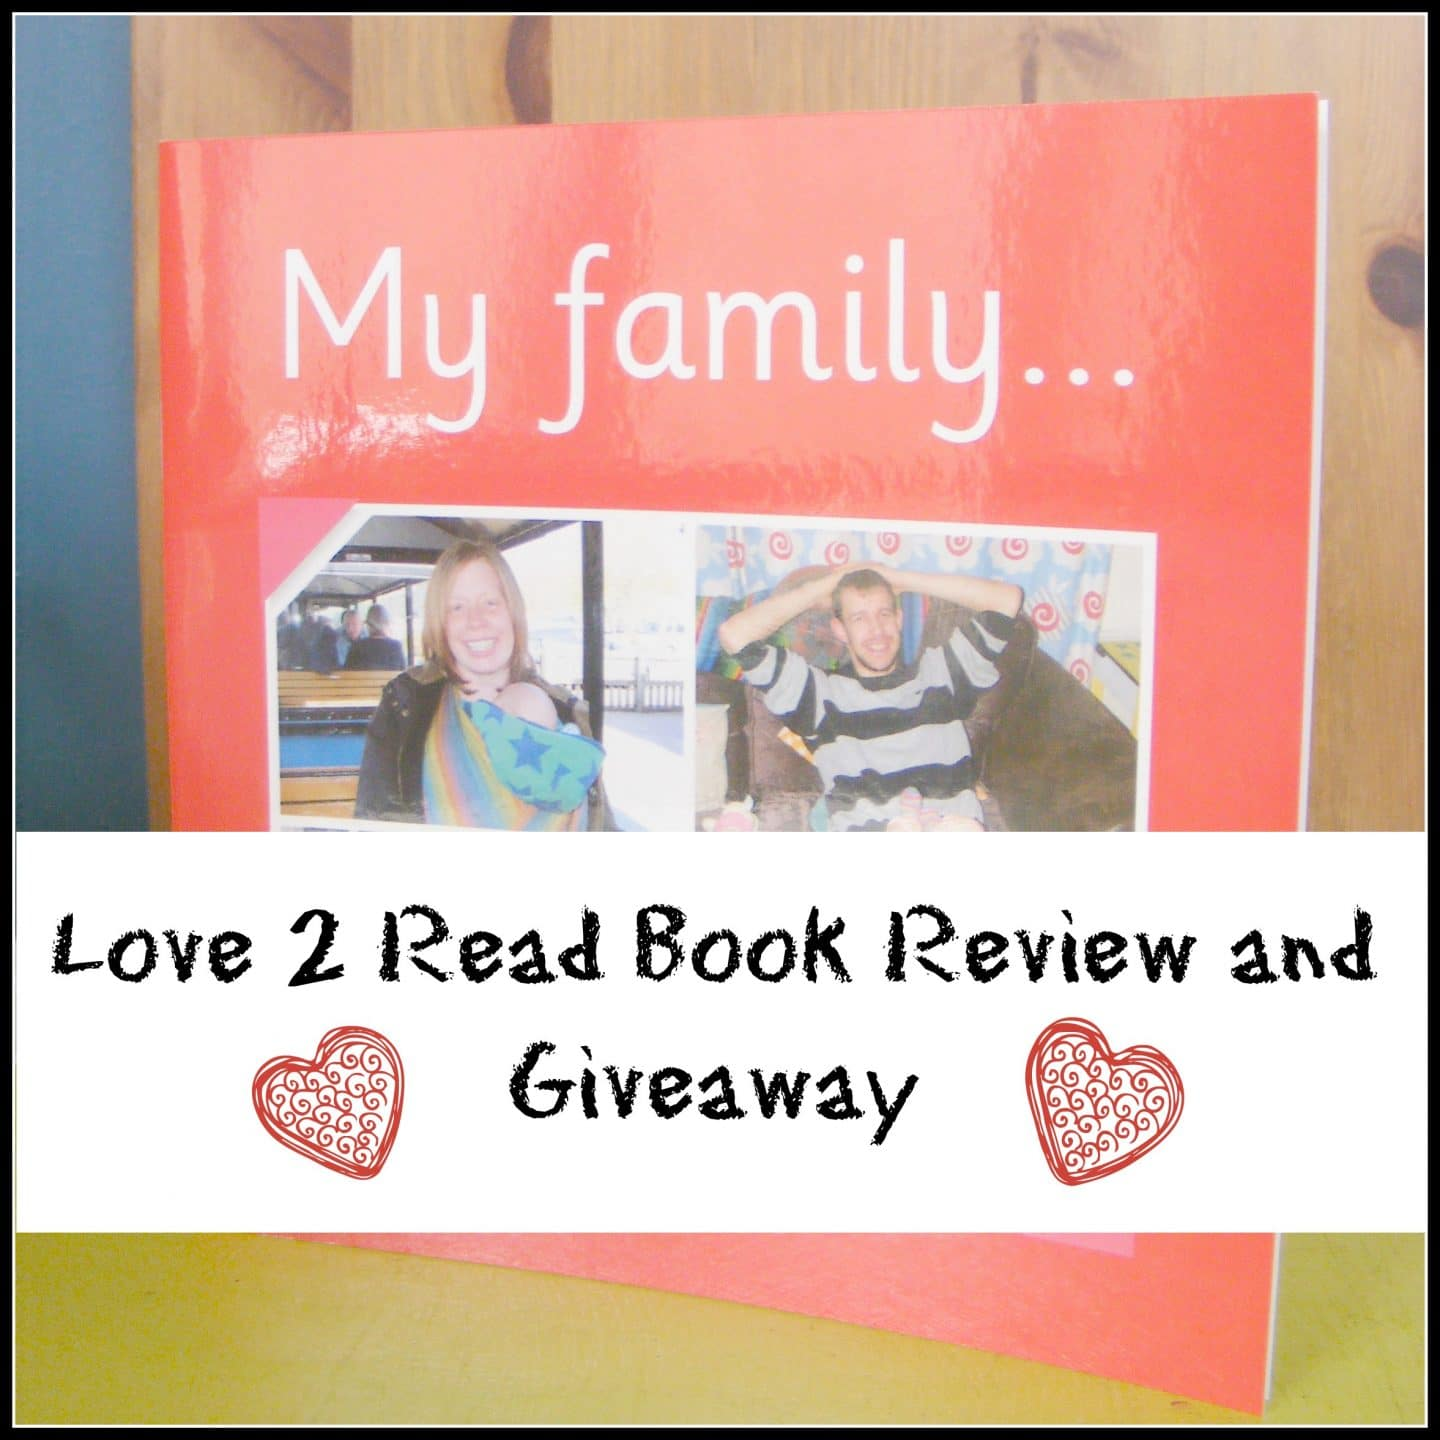 Love2Read Book Review and Giveaway